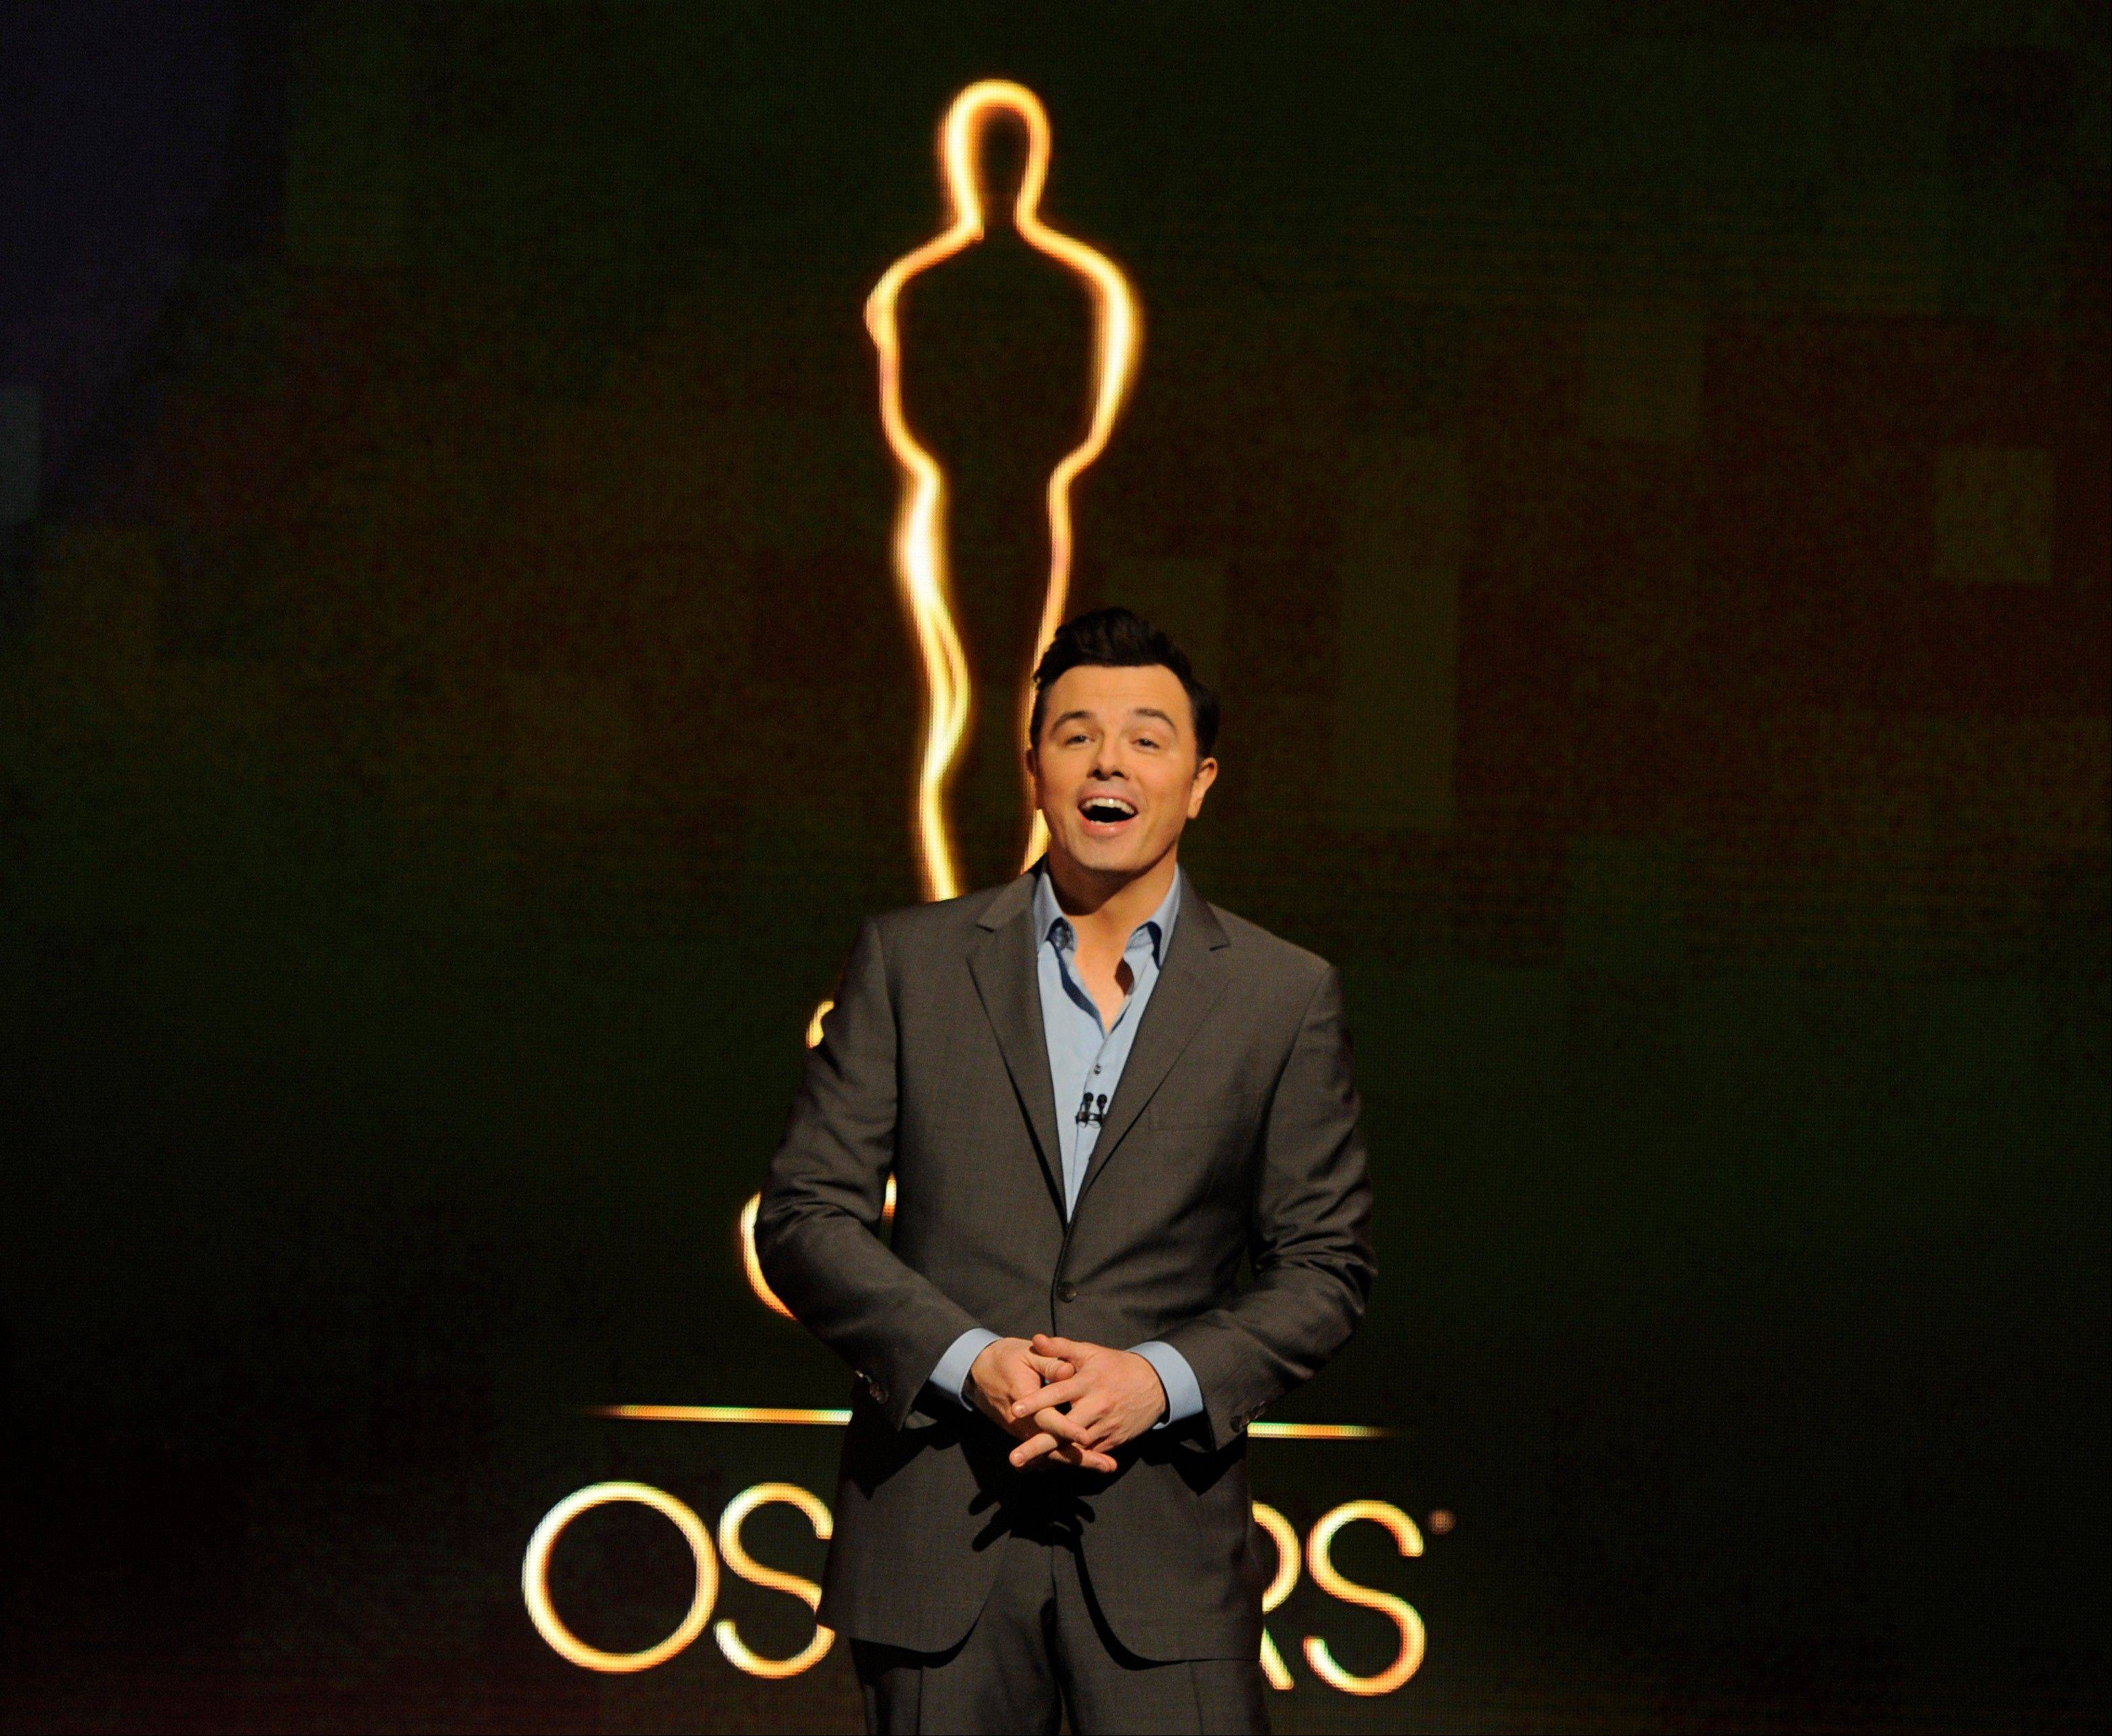 Seth MacFarlane is putting everything into hosting the 85th Academy Awards on Sunday.